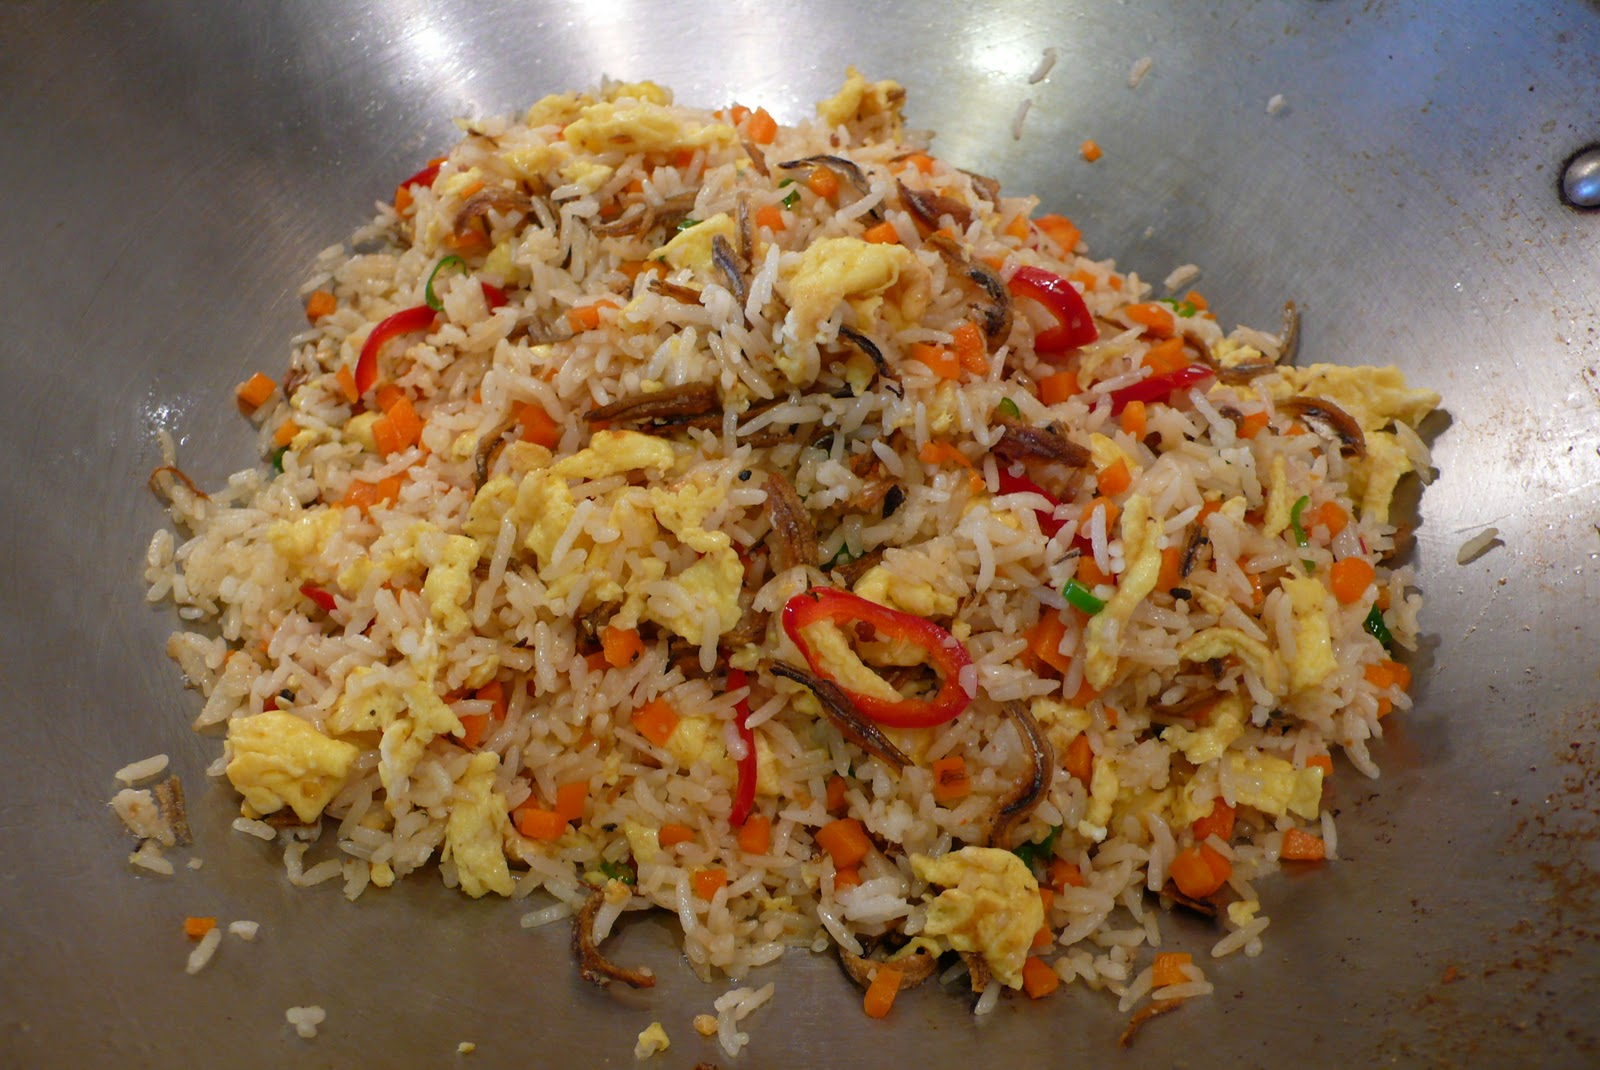 delimilli: Fried Rice with Dried Anchovies (Nasi Goreng Ikan Bilis)